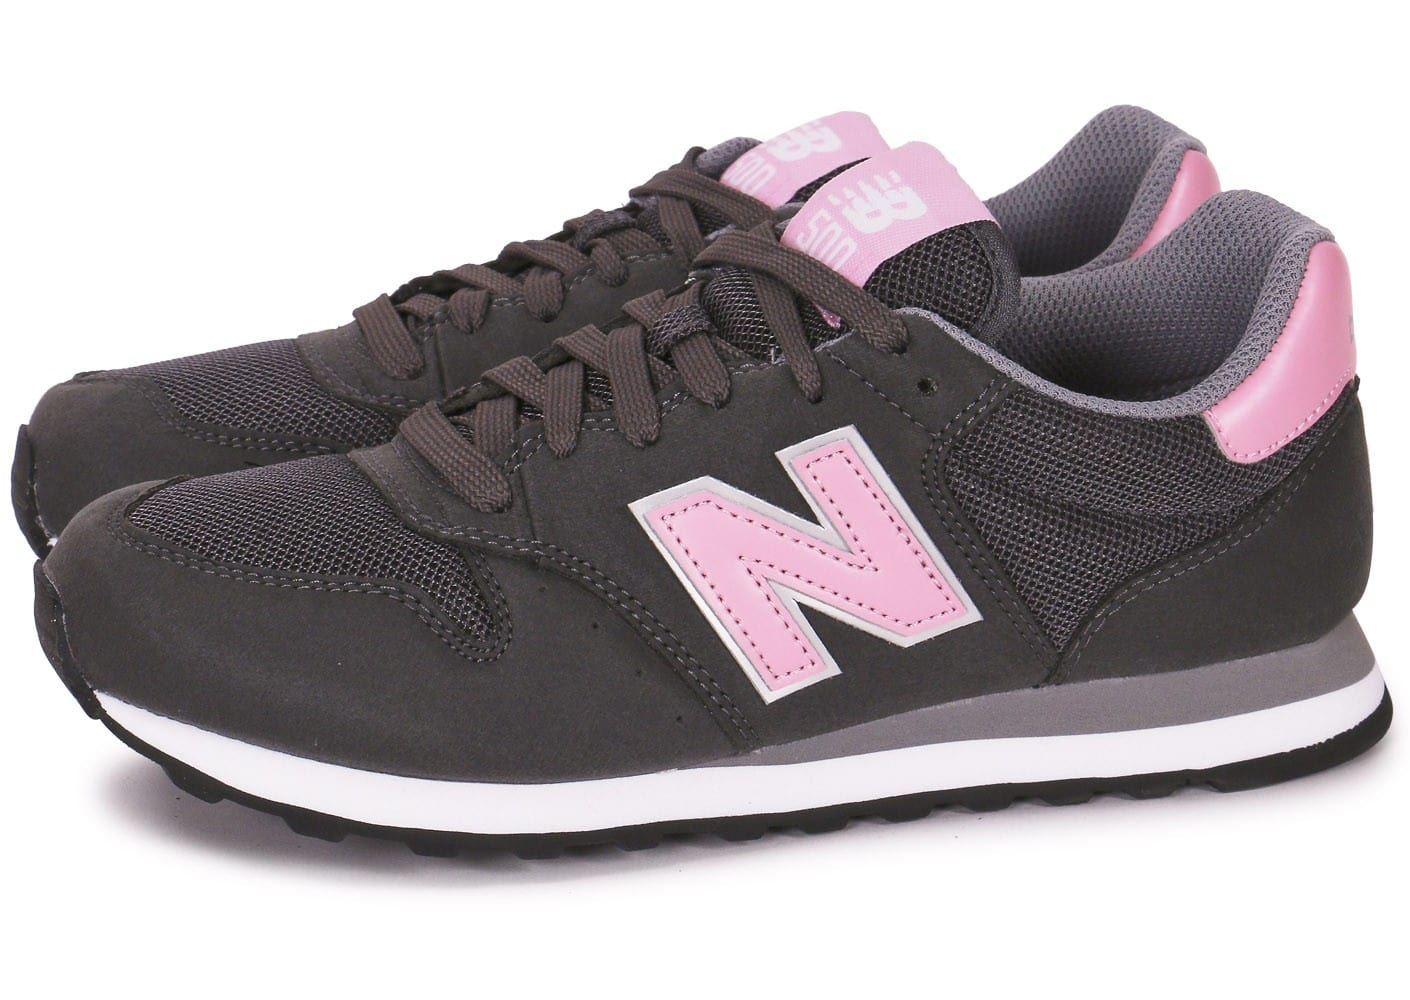 new balance w500 grise et rose chaussures chaussures chausport. Black Bedroom Furniture Sets. Home Design Ideas